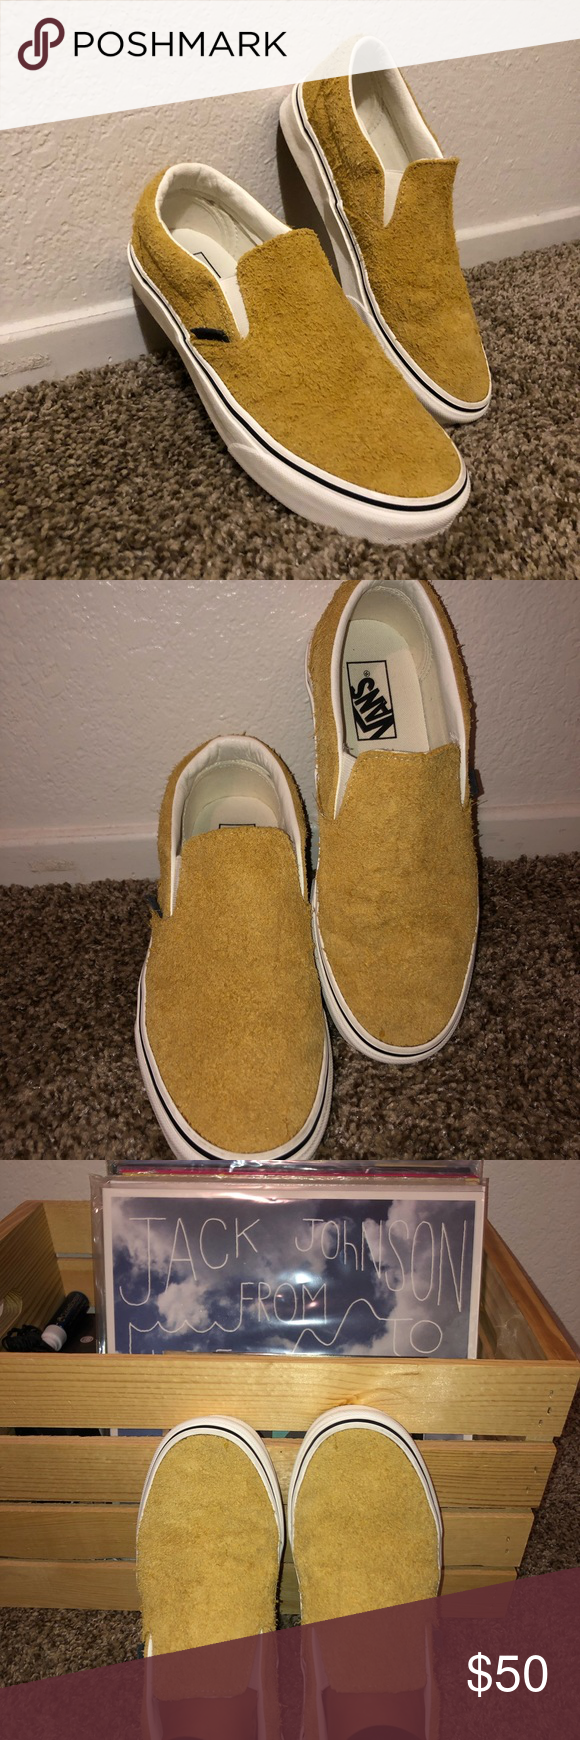 dd22a7c506 Sunflower Suede Slip-on Vans🌻 Brand new in box! They are a women s